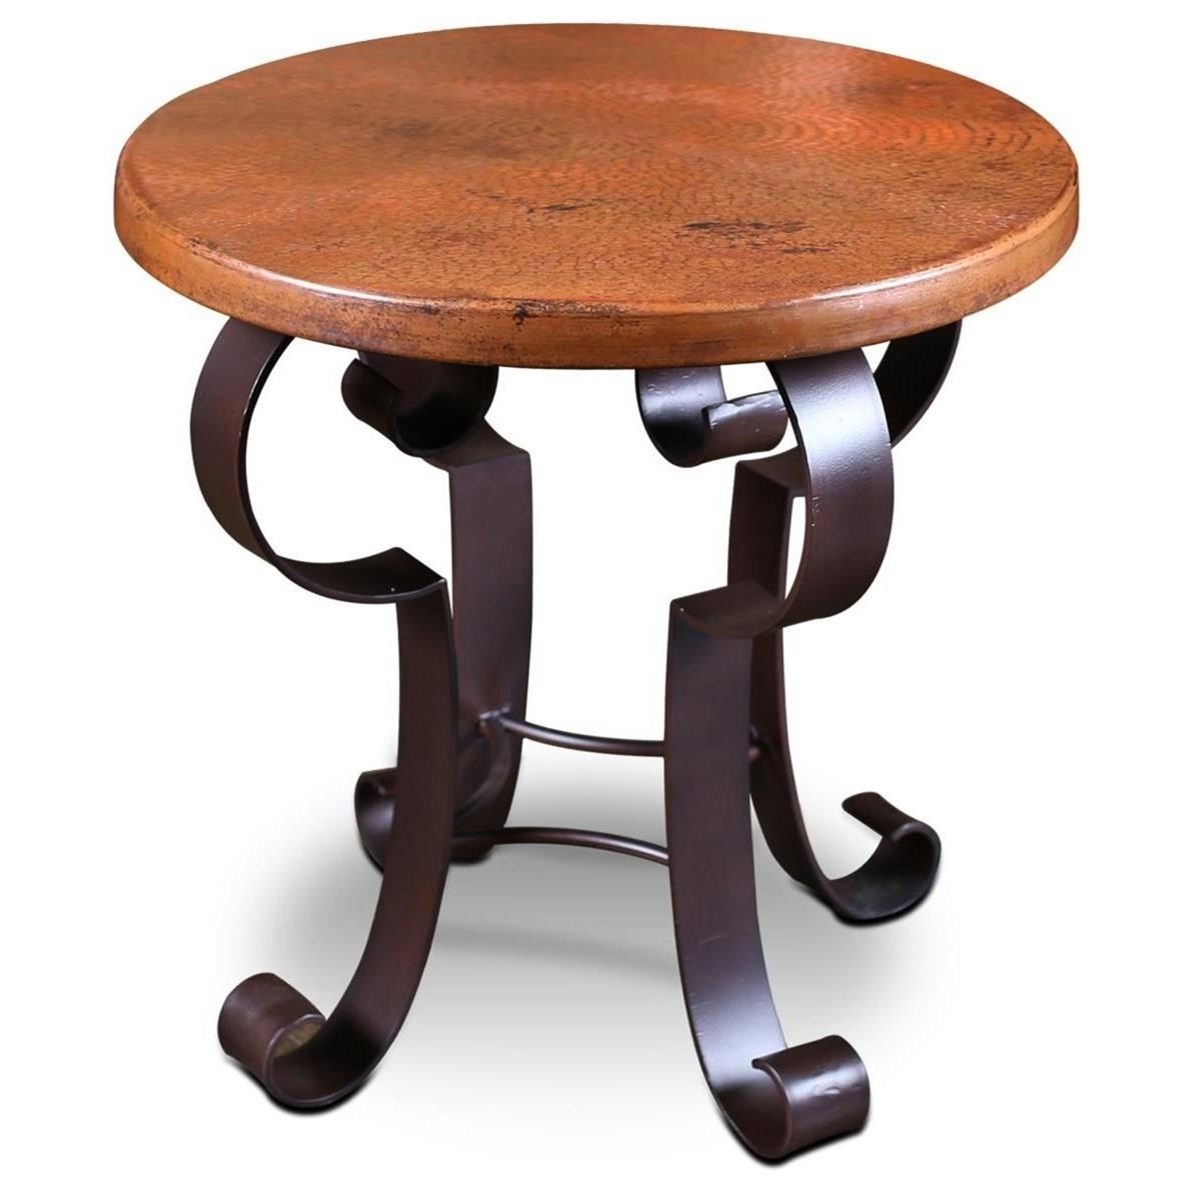 Mallorca Copper Top End Table by Horizon Home at Home Furnishings Direct